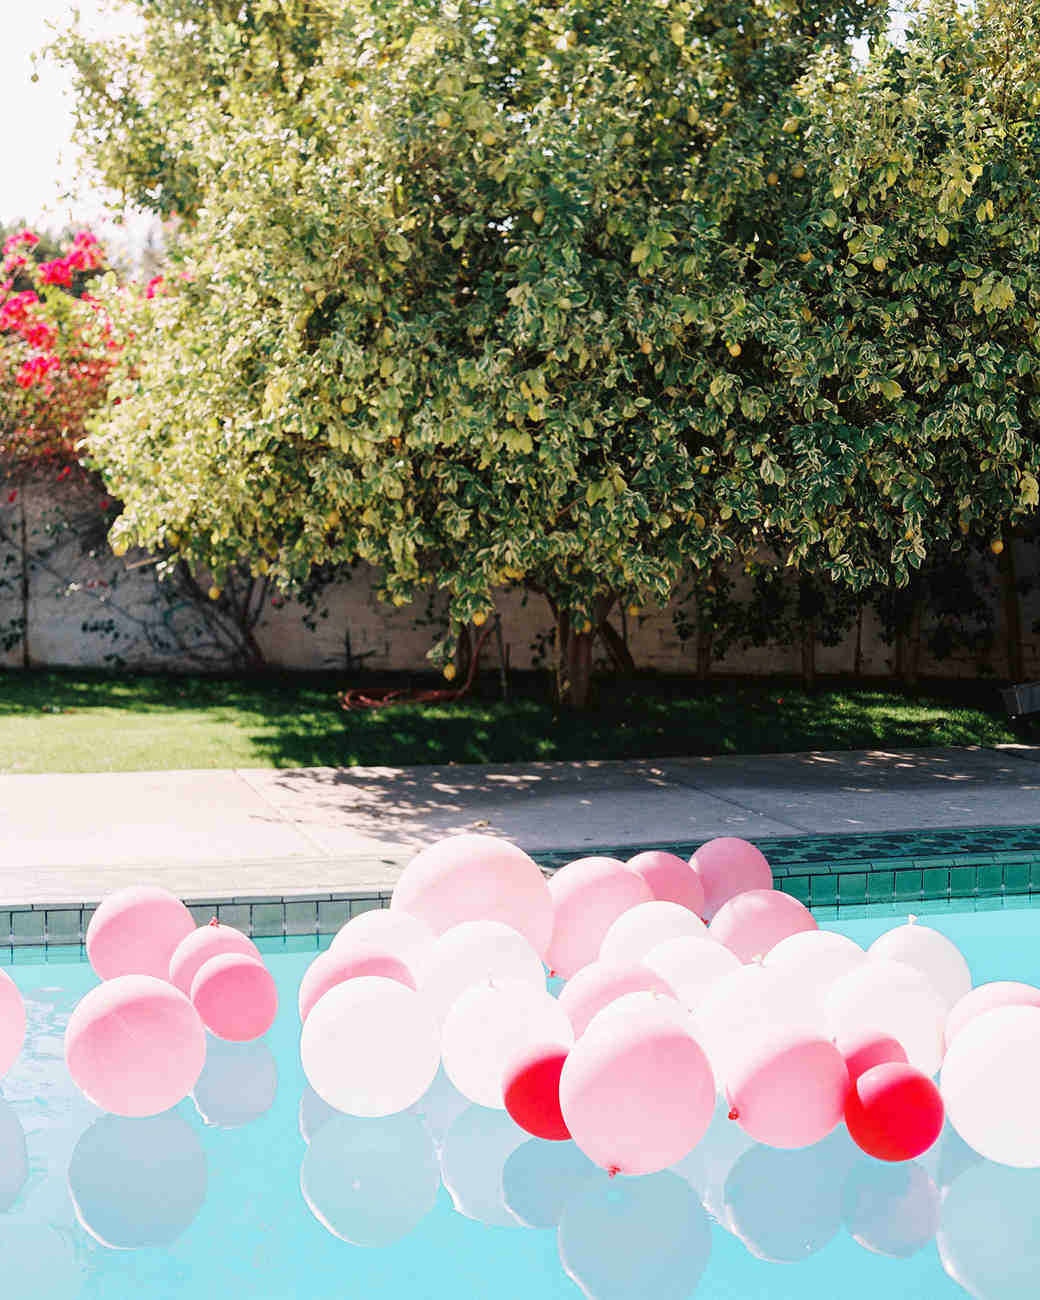 kelly-jeff-wedding-palm-springs-balloons-pool-0125-s112234.jpg